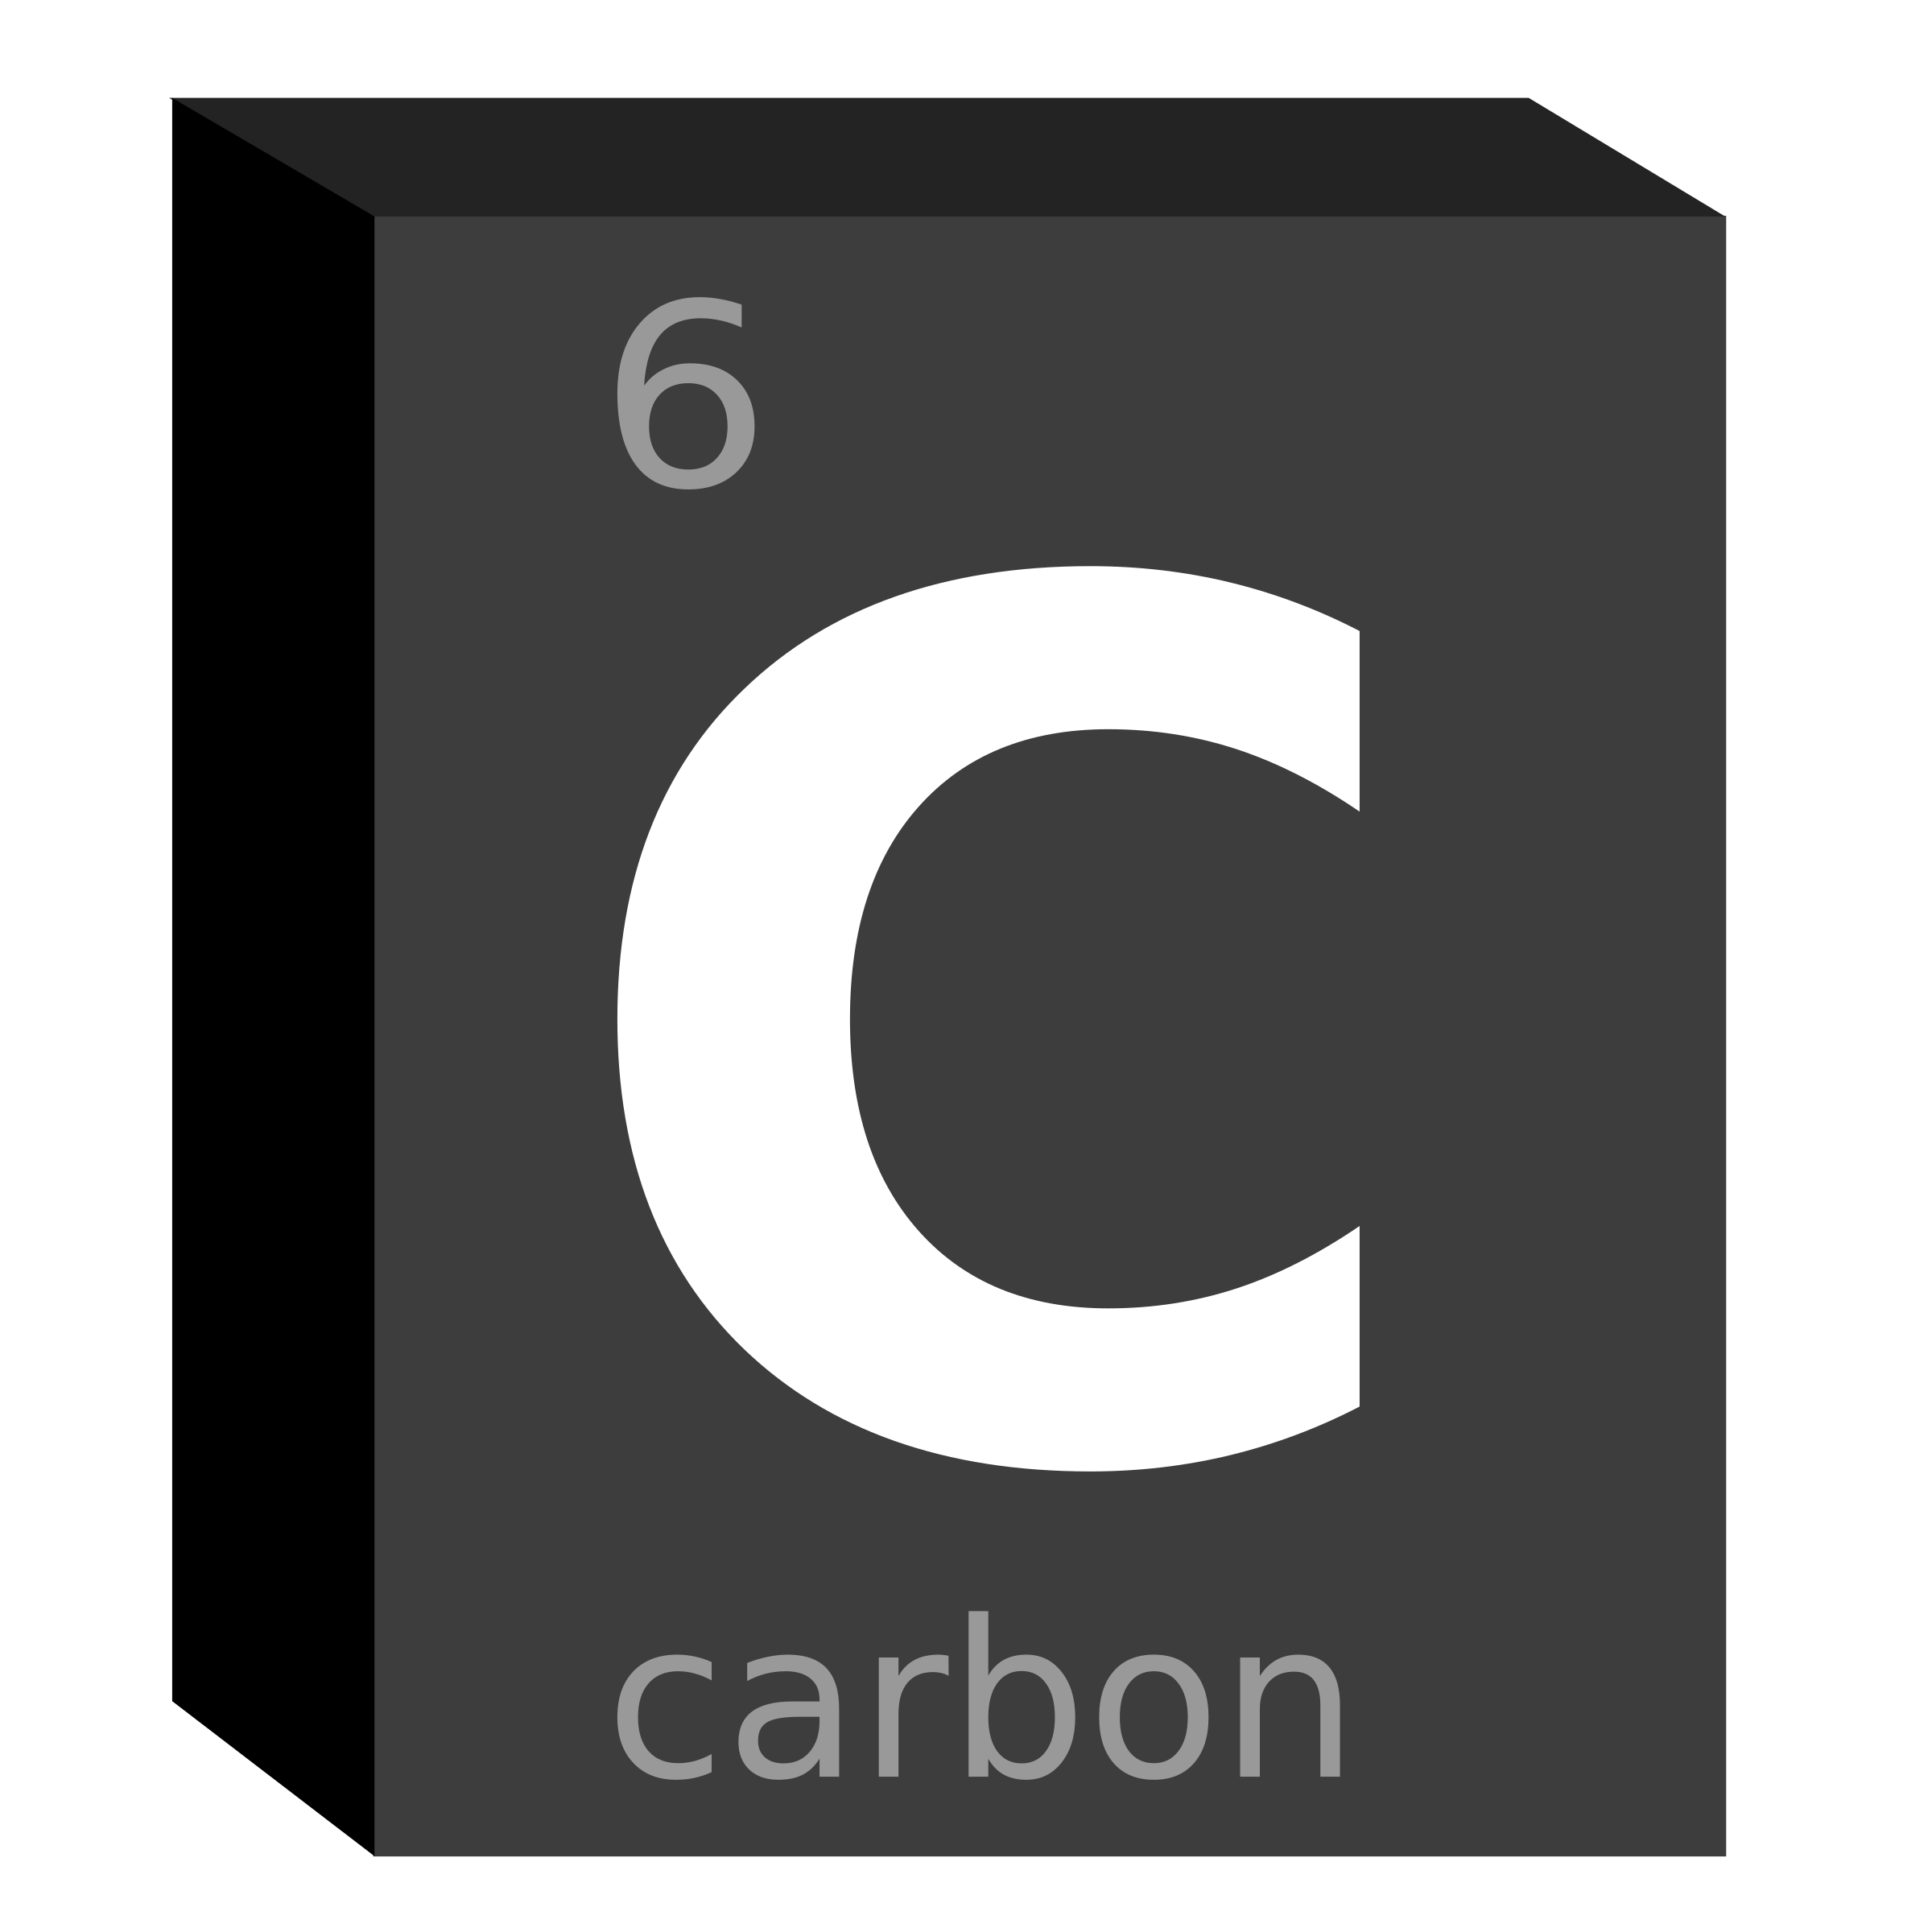 carbon element images reverse search